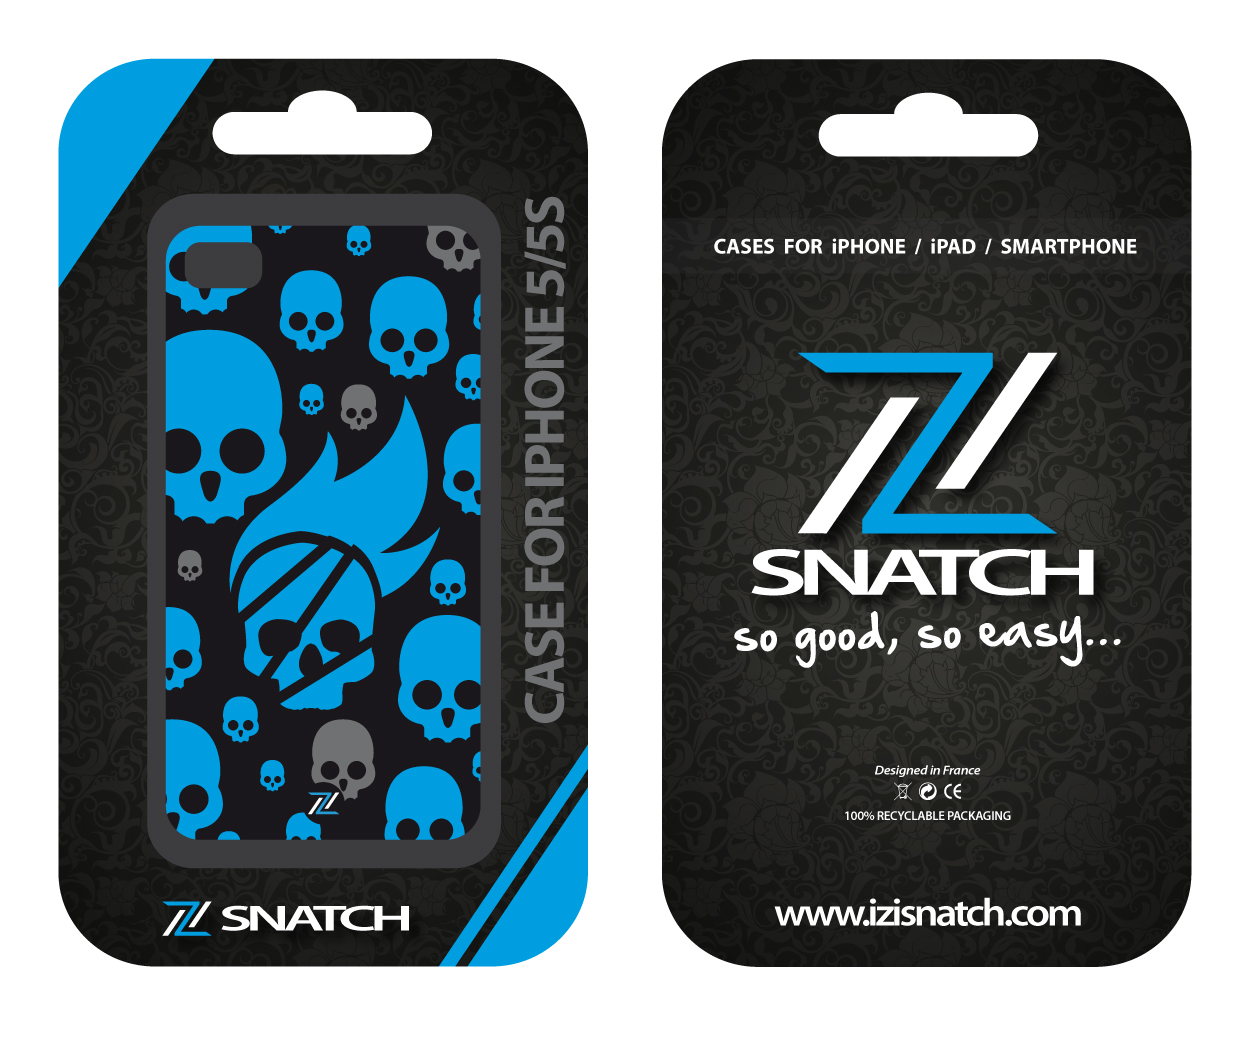 Packaging | IZI SNATCH